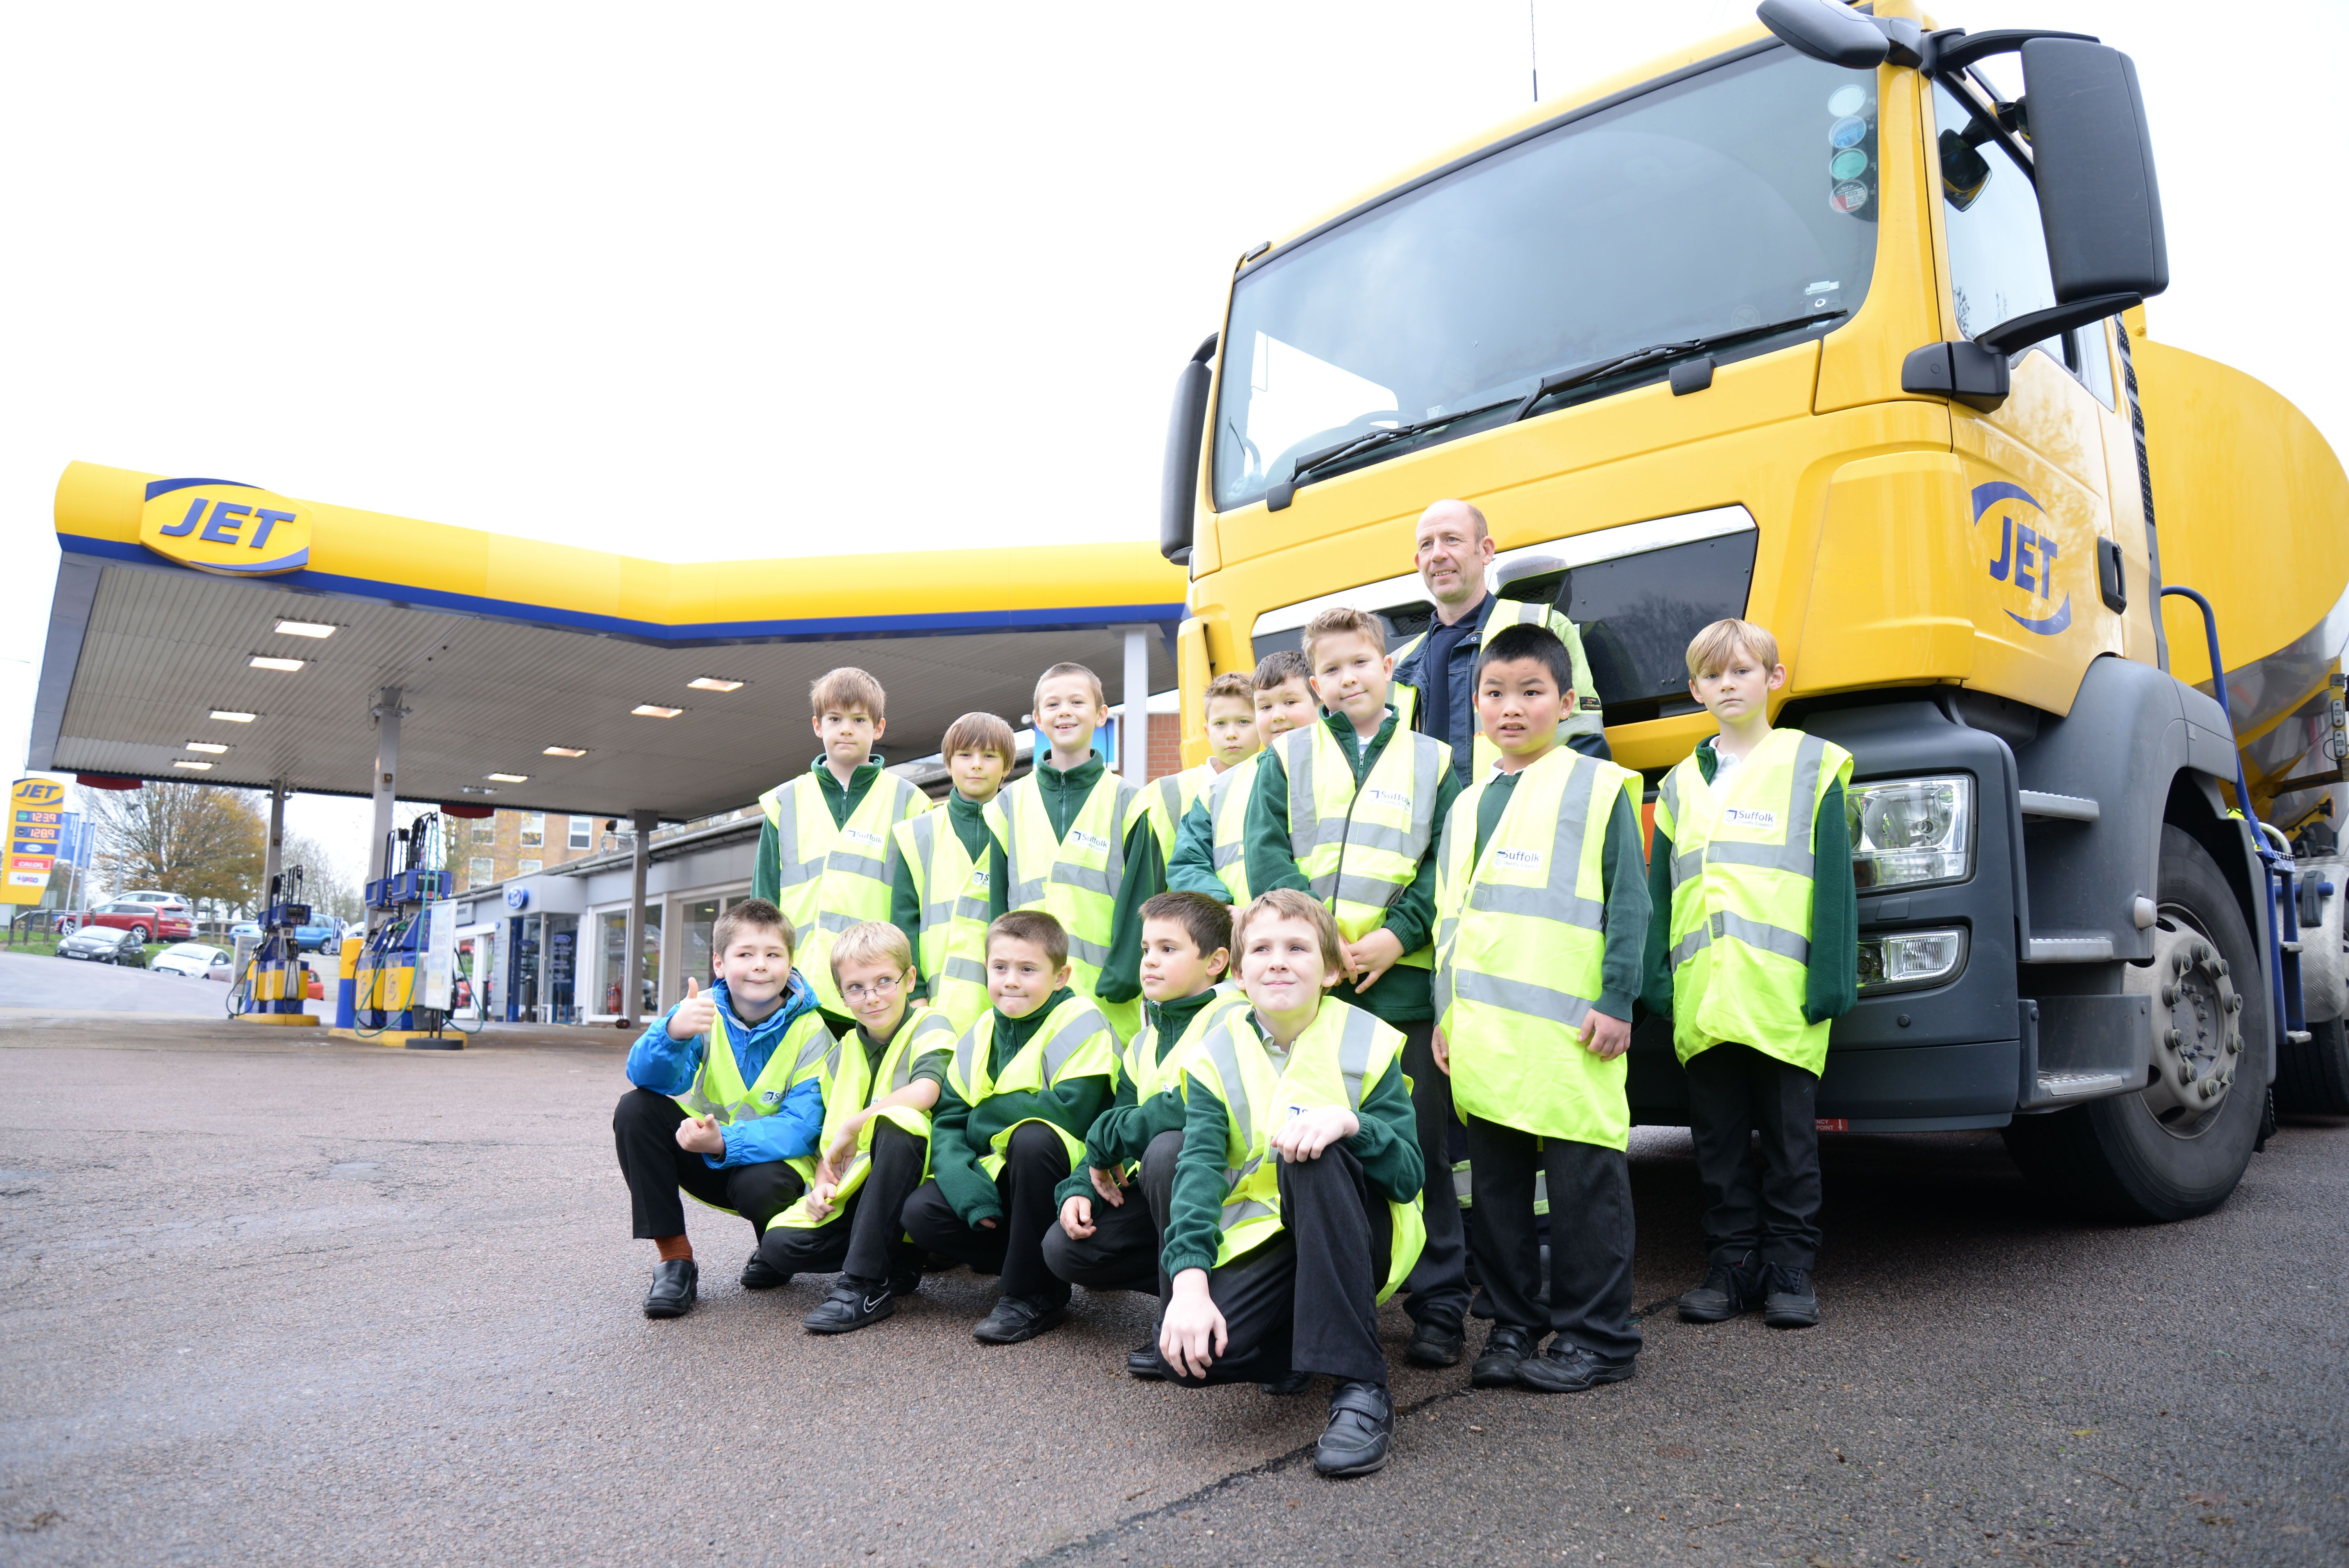 Halesworth pupils take part in national Road Safety initiative thanks to JET